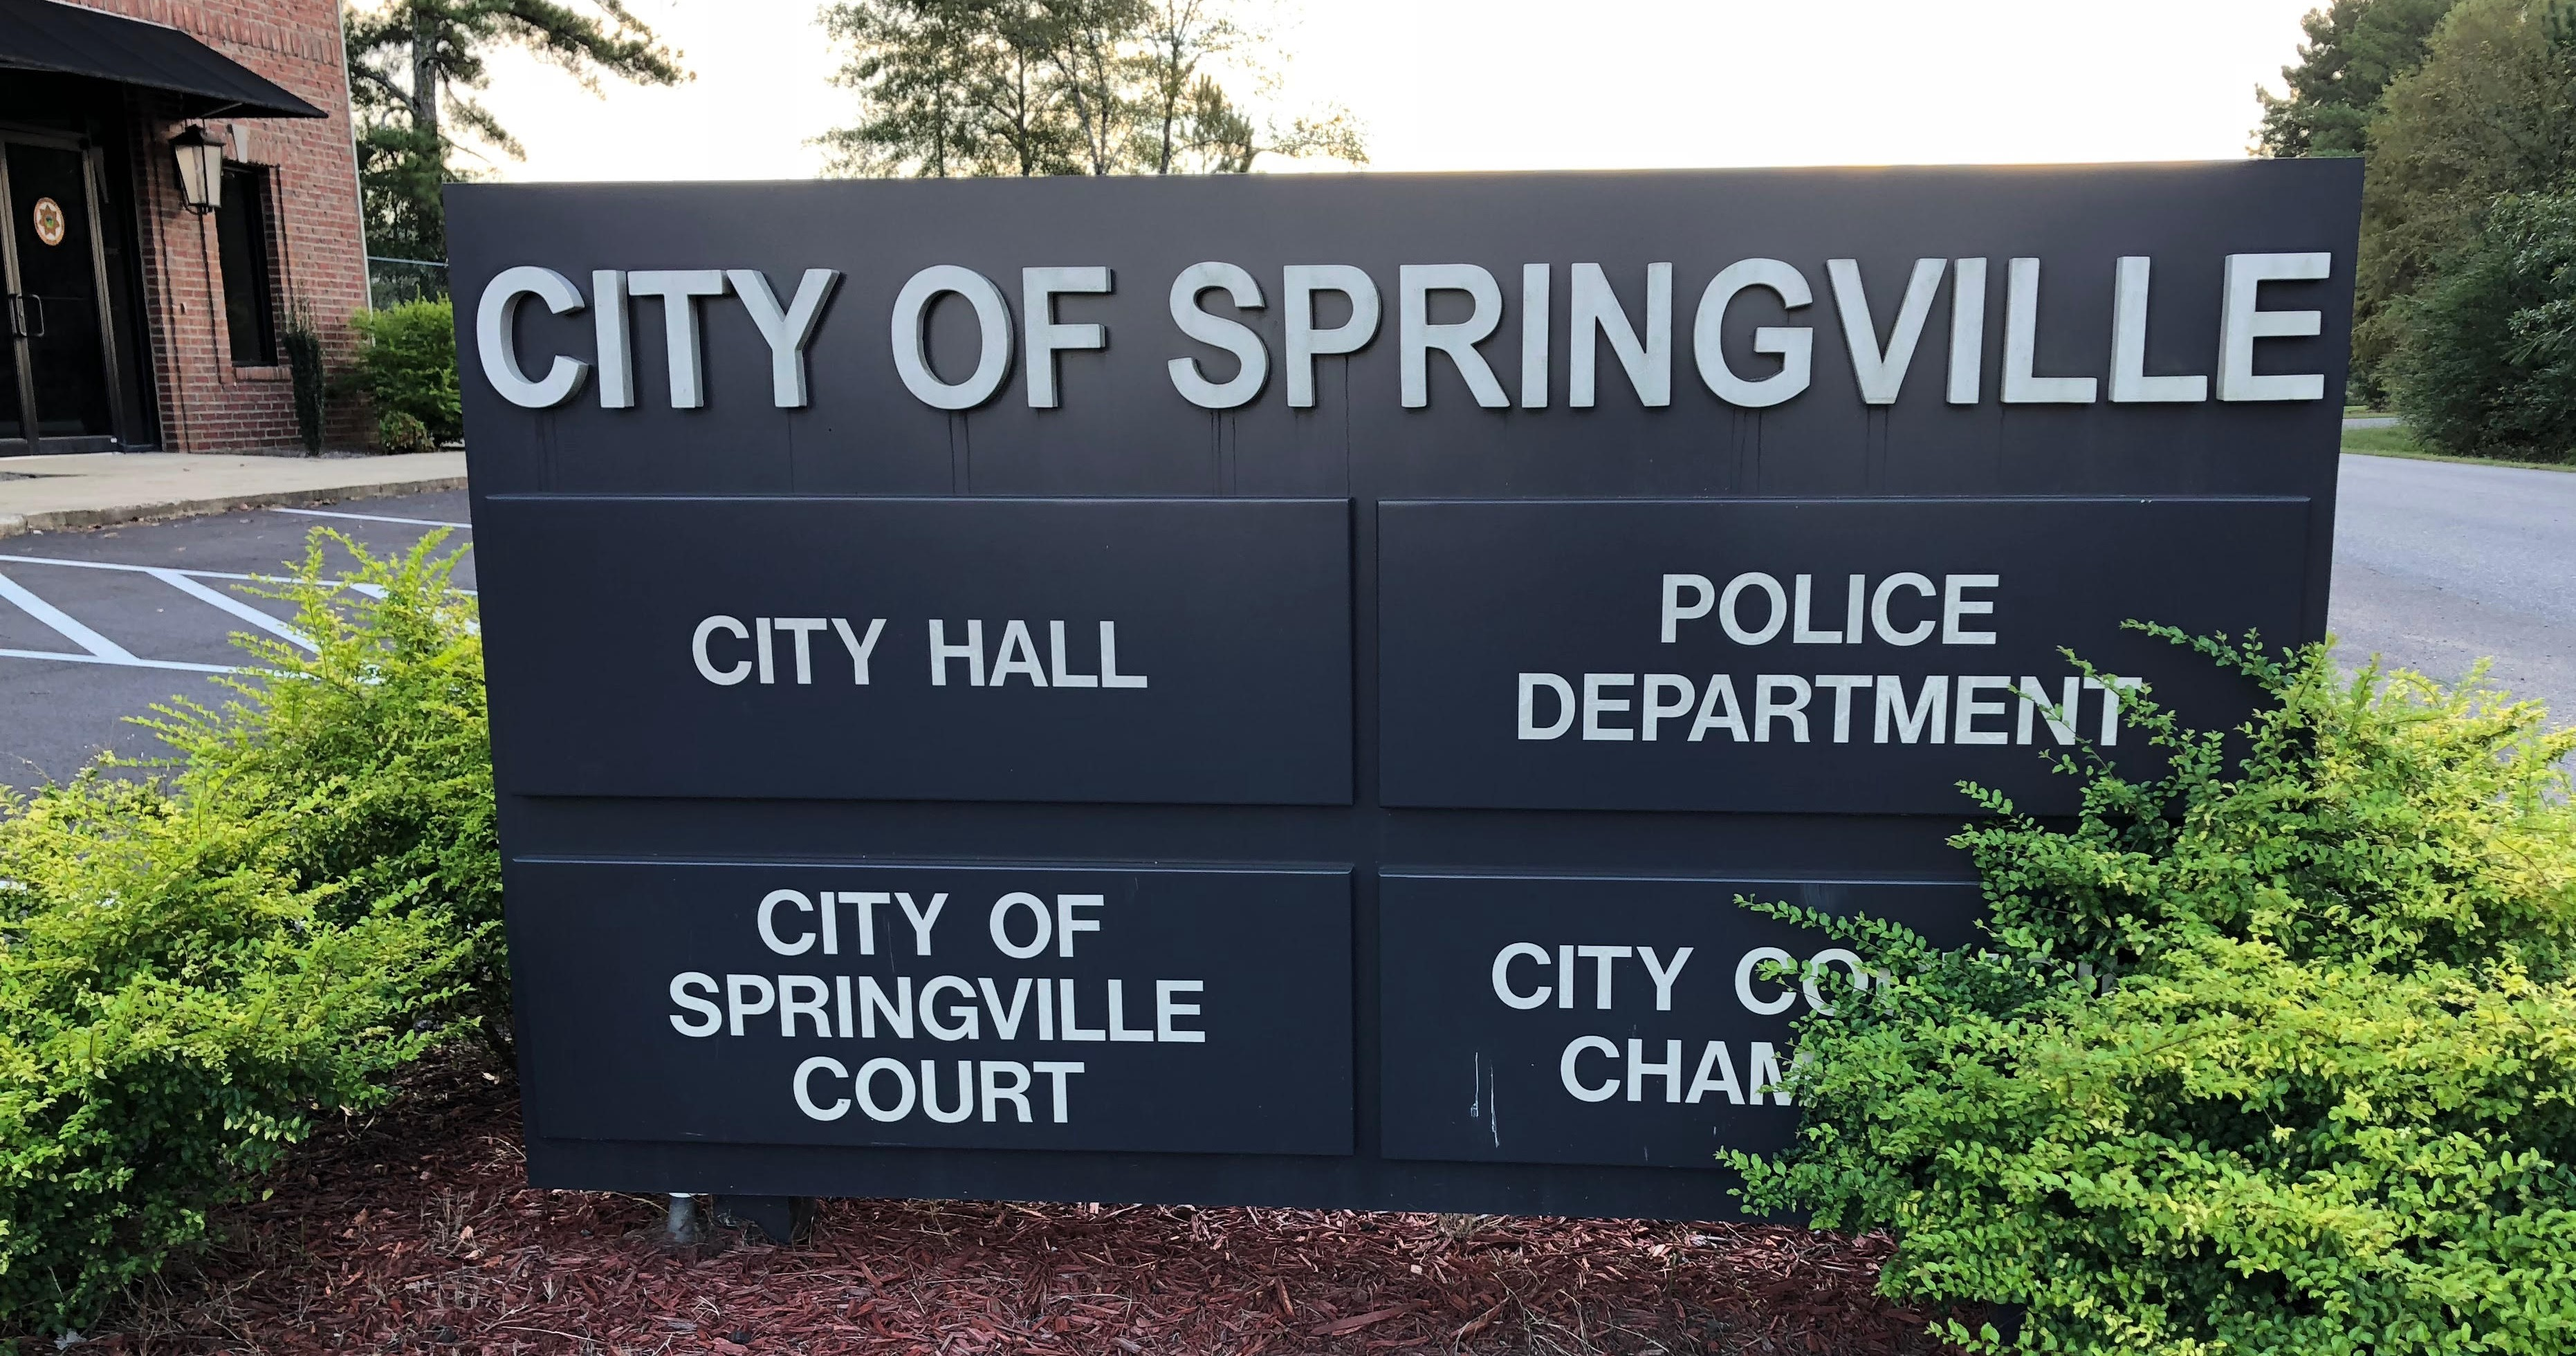 Springville Mayor addresses plans to preserve downtown as the city grows